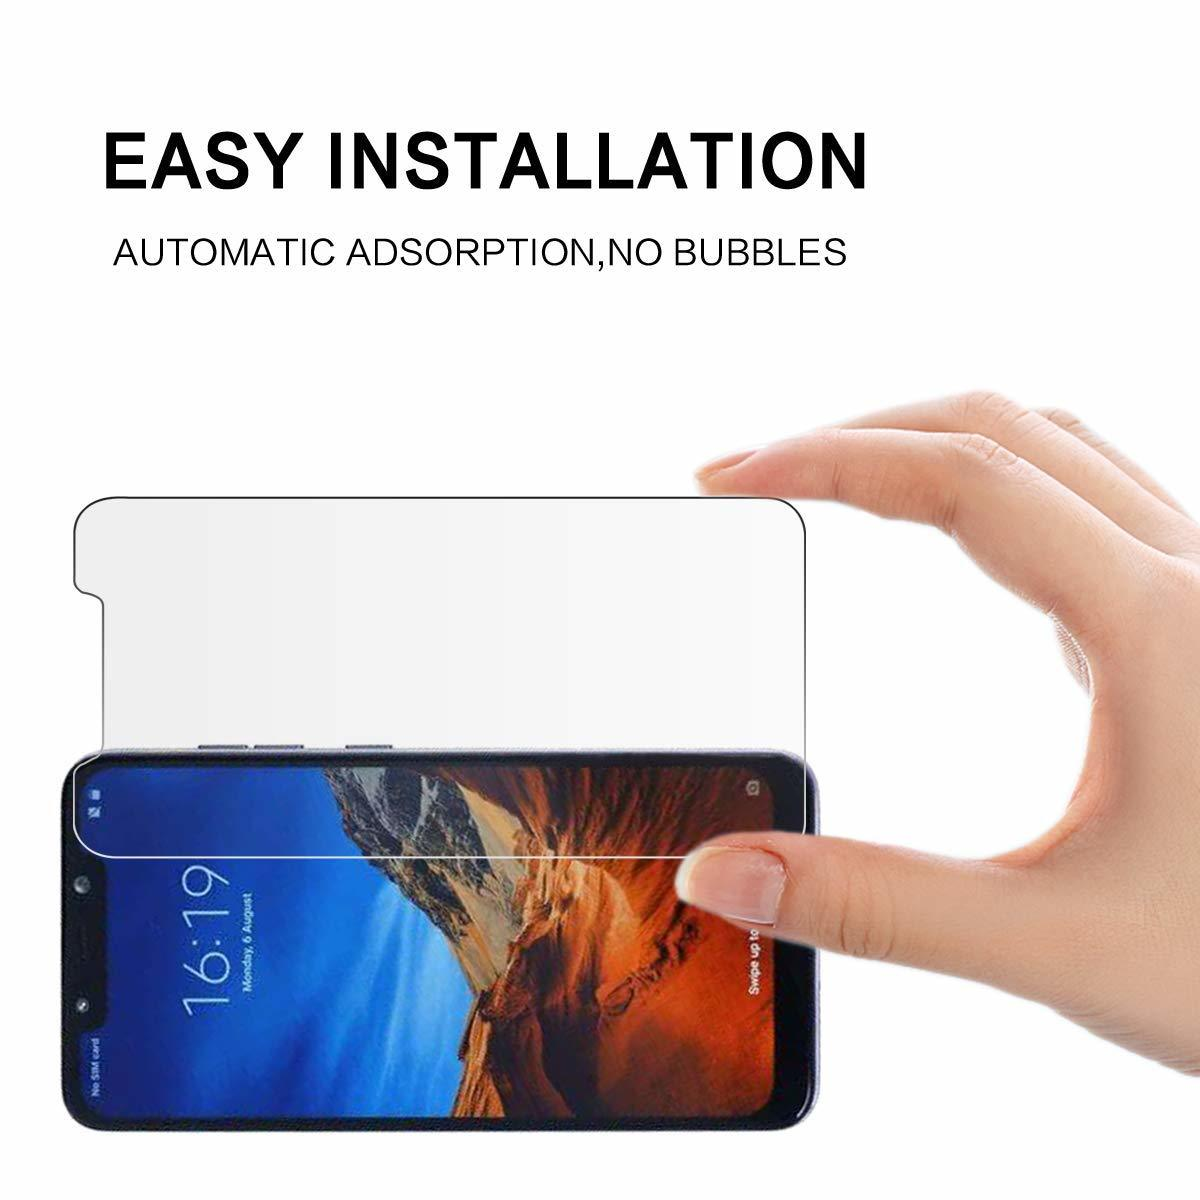 Every Need Want Day Tempered Glass Full Xiaomi Pocophone F1 Xiaomipocophone F1redmimi Max 3s266a5 Plusredmi Note 5atempered Glassfull Covercase